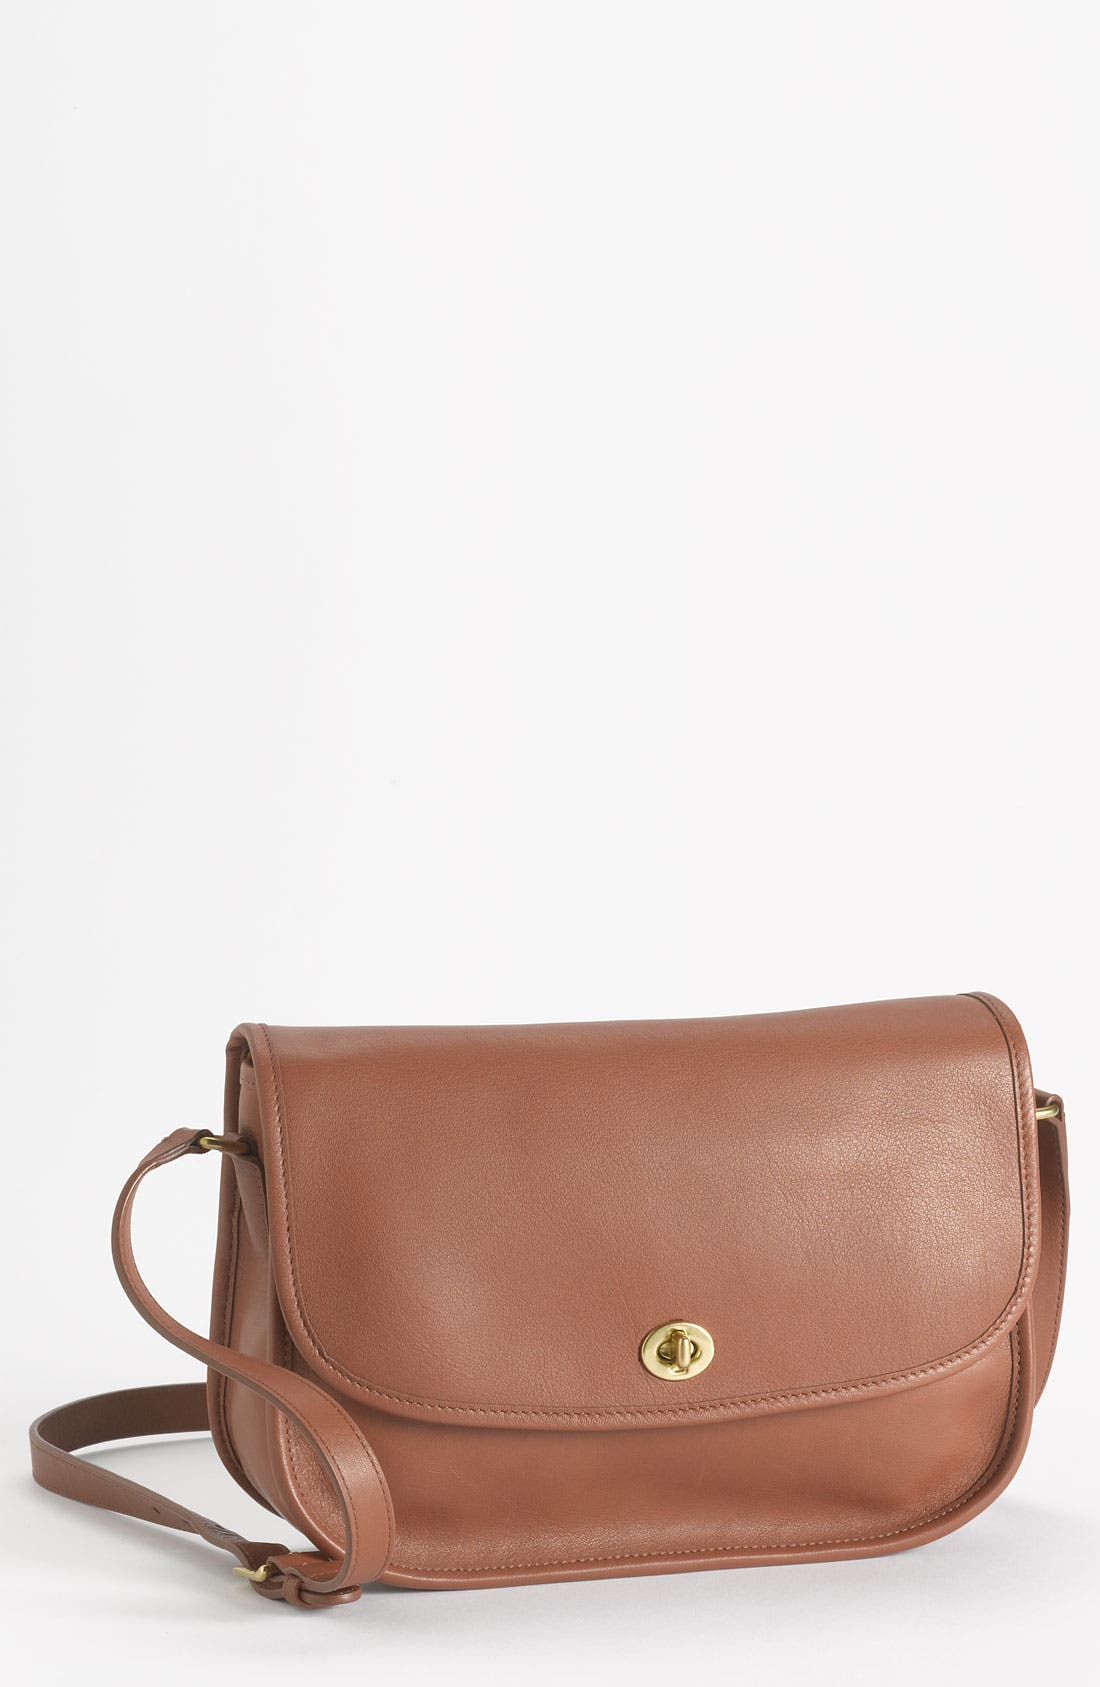 Alternate Image 1 Selected - COACH 'City' Leather Crossbody Bag